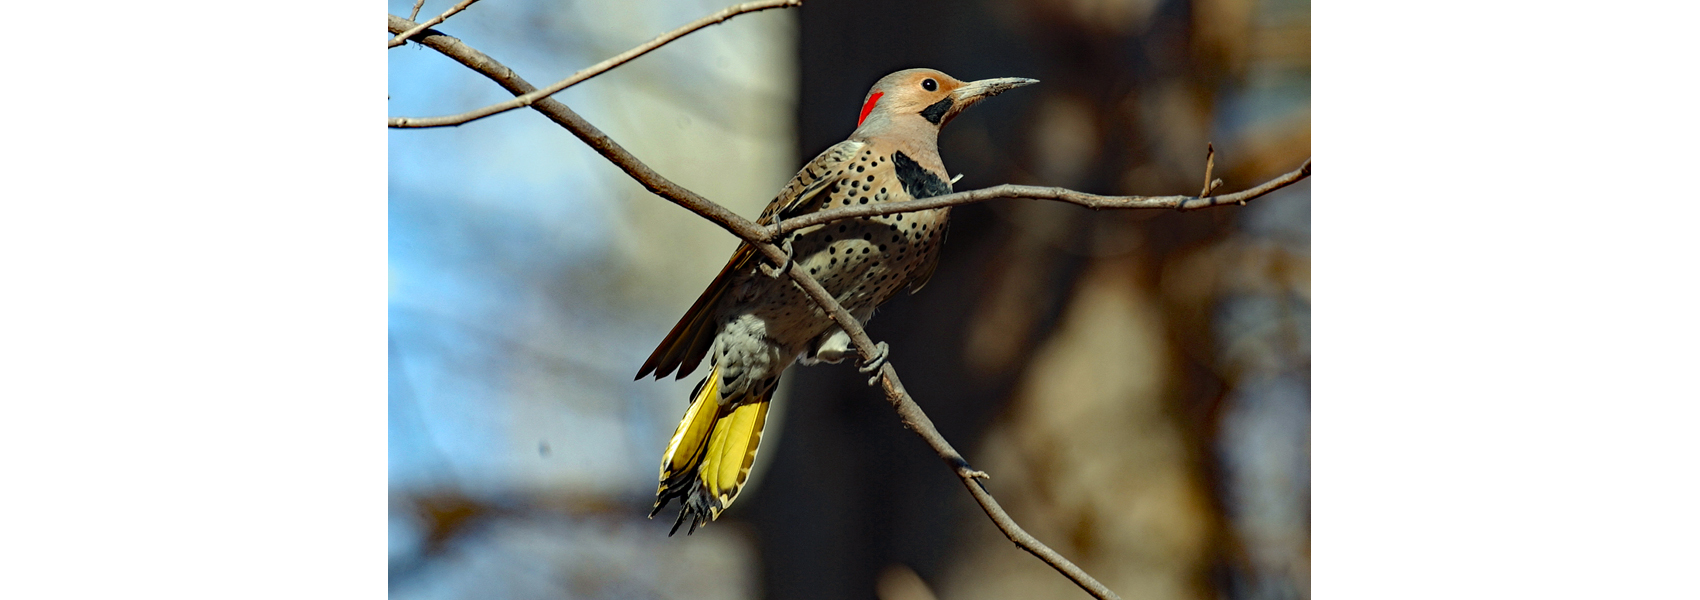 Northern flicker on a tree branch